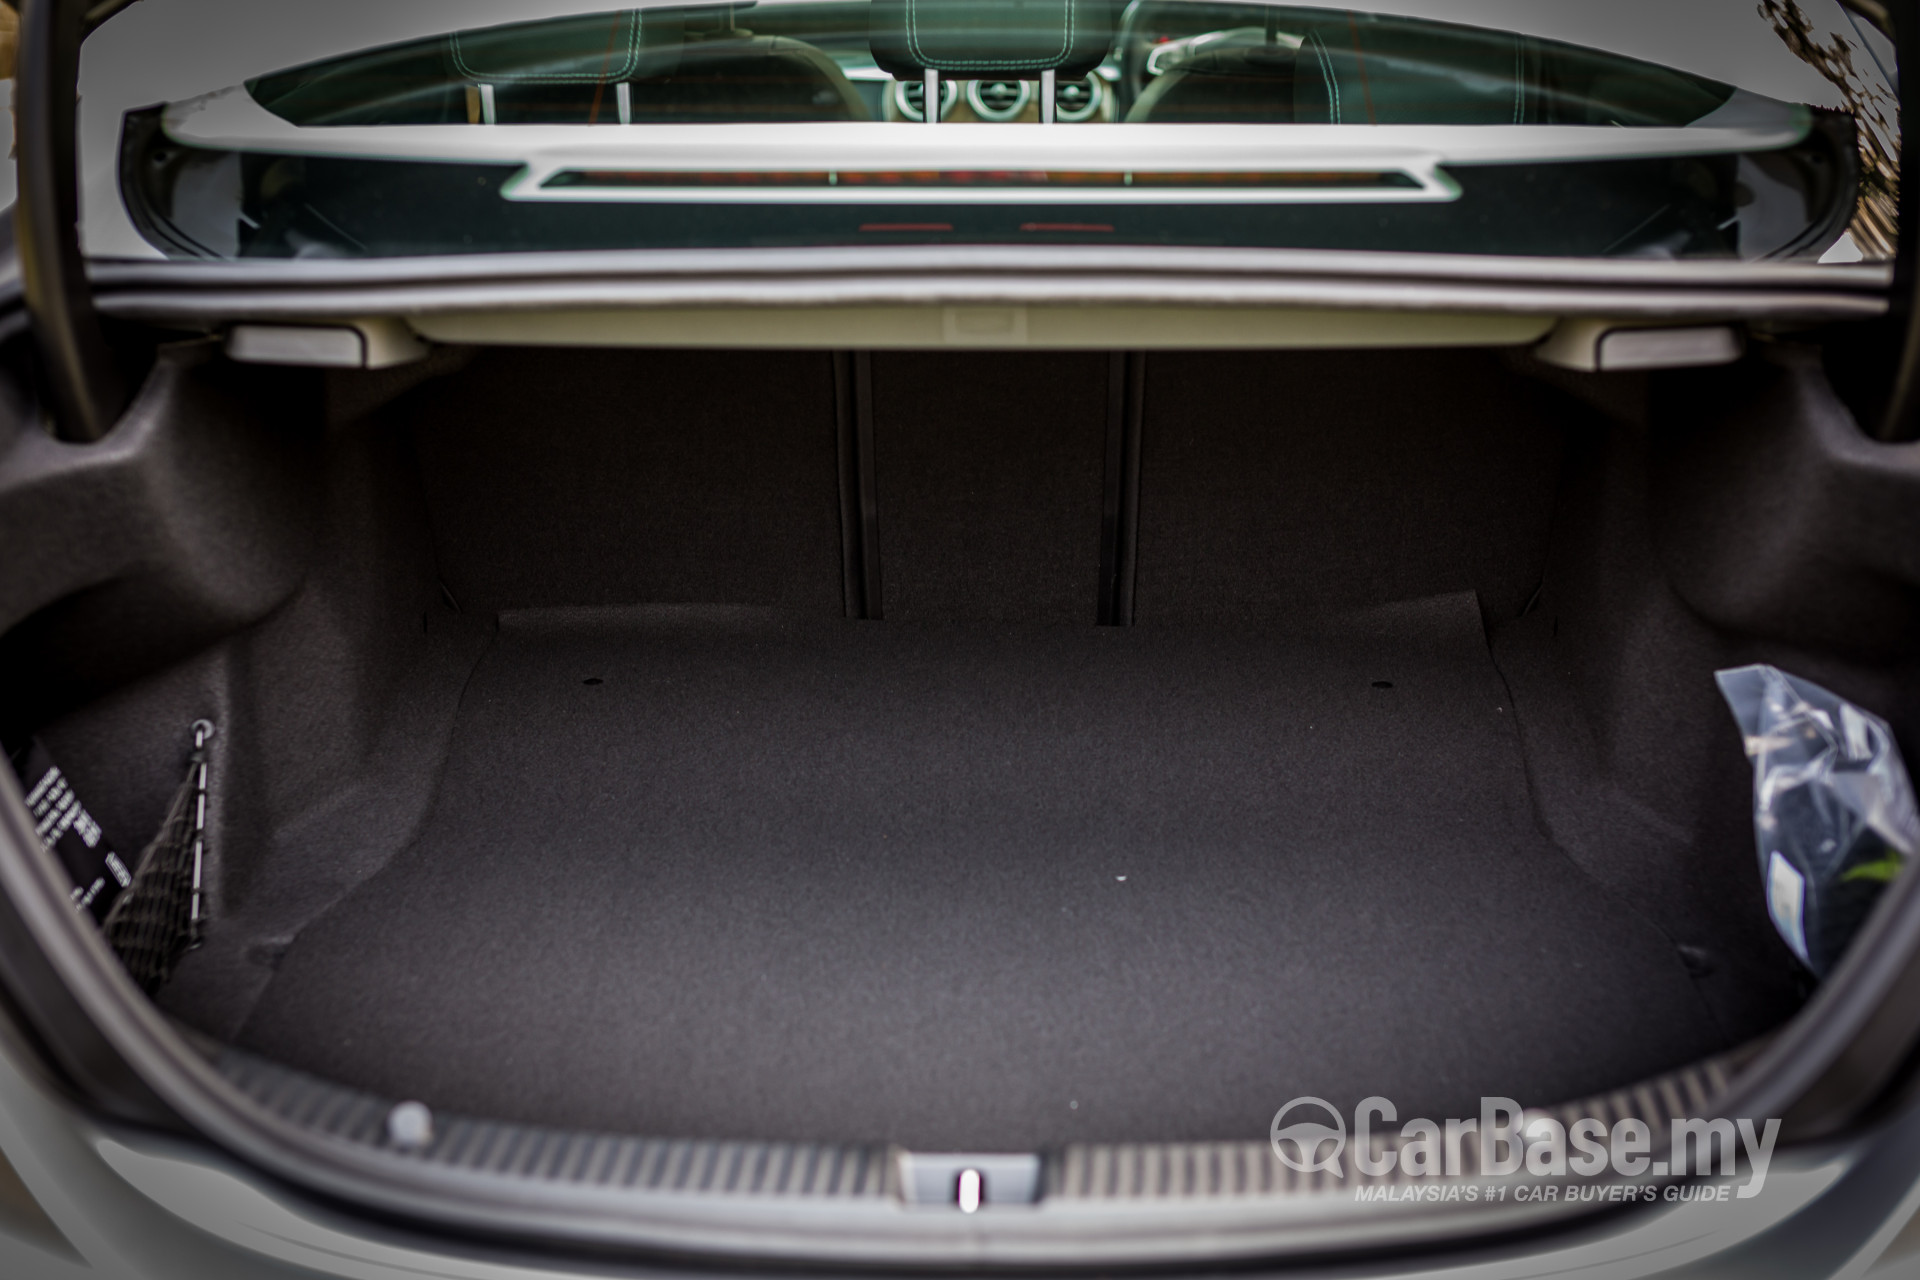 Mercedes benz c class w205 2014 interior image 15878 in malaysia reviews specs prices - 2014 mercedes c class interior ...